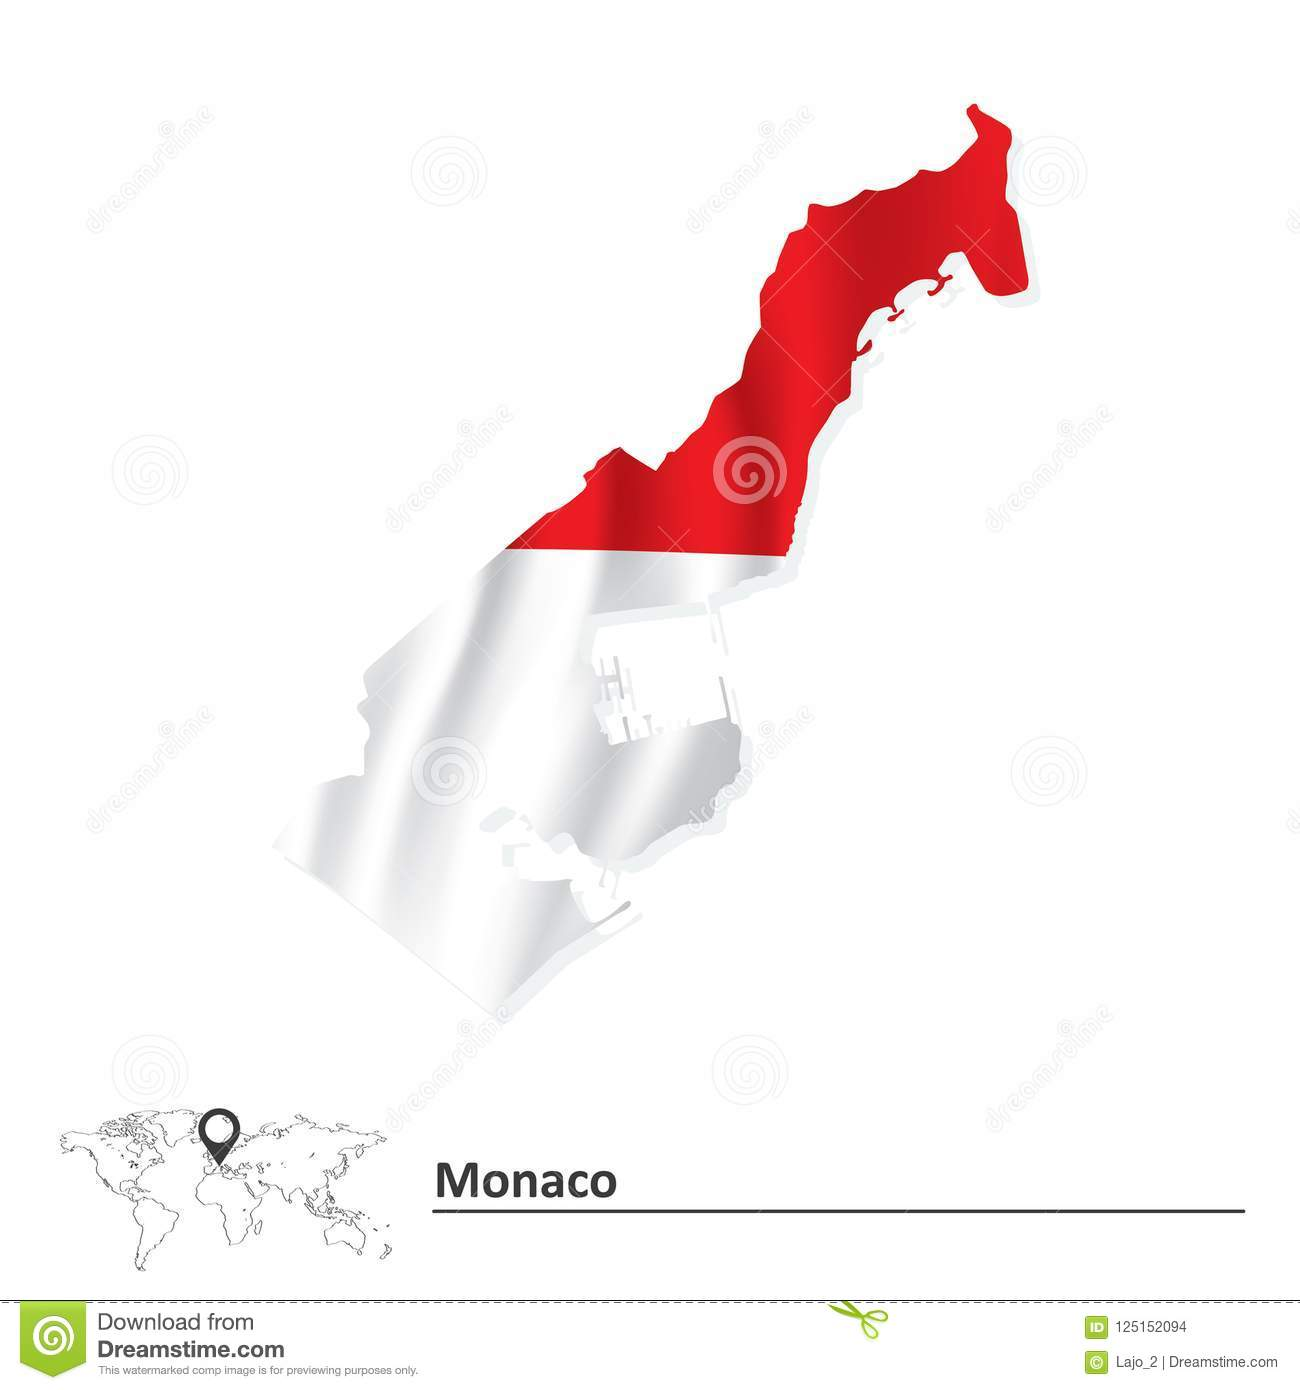 Map of Monaco with flag